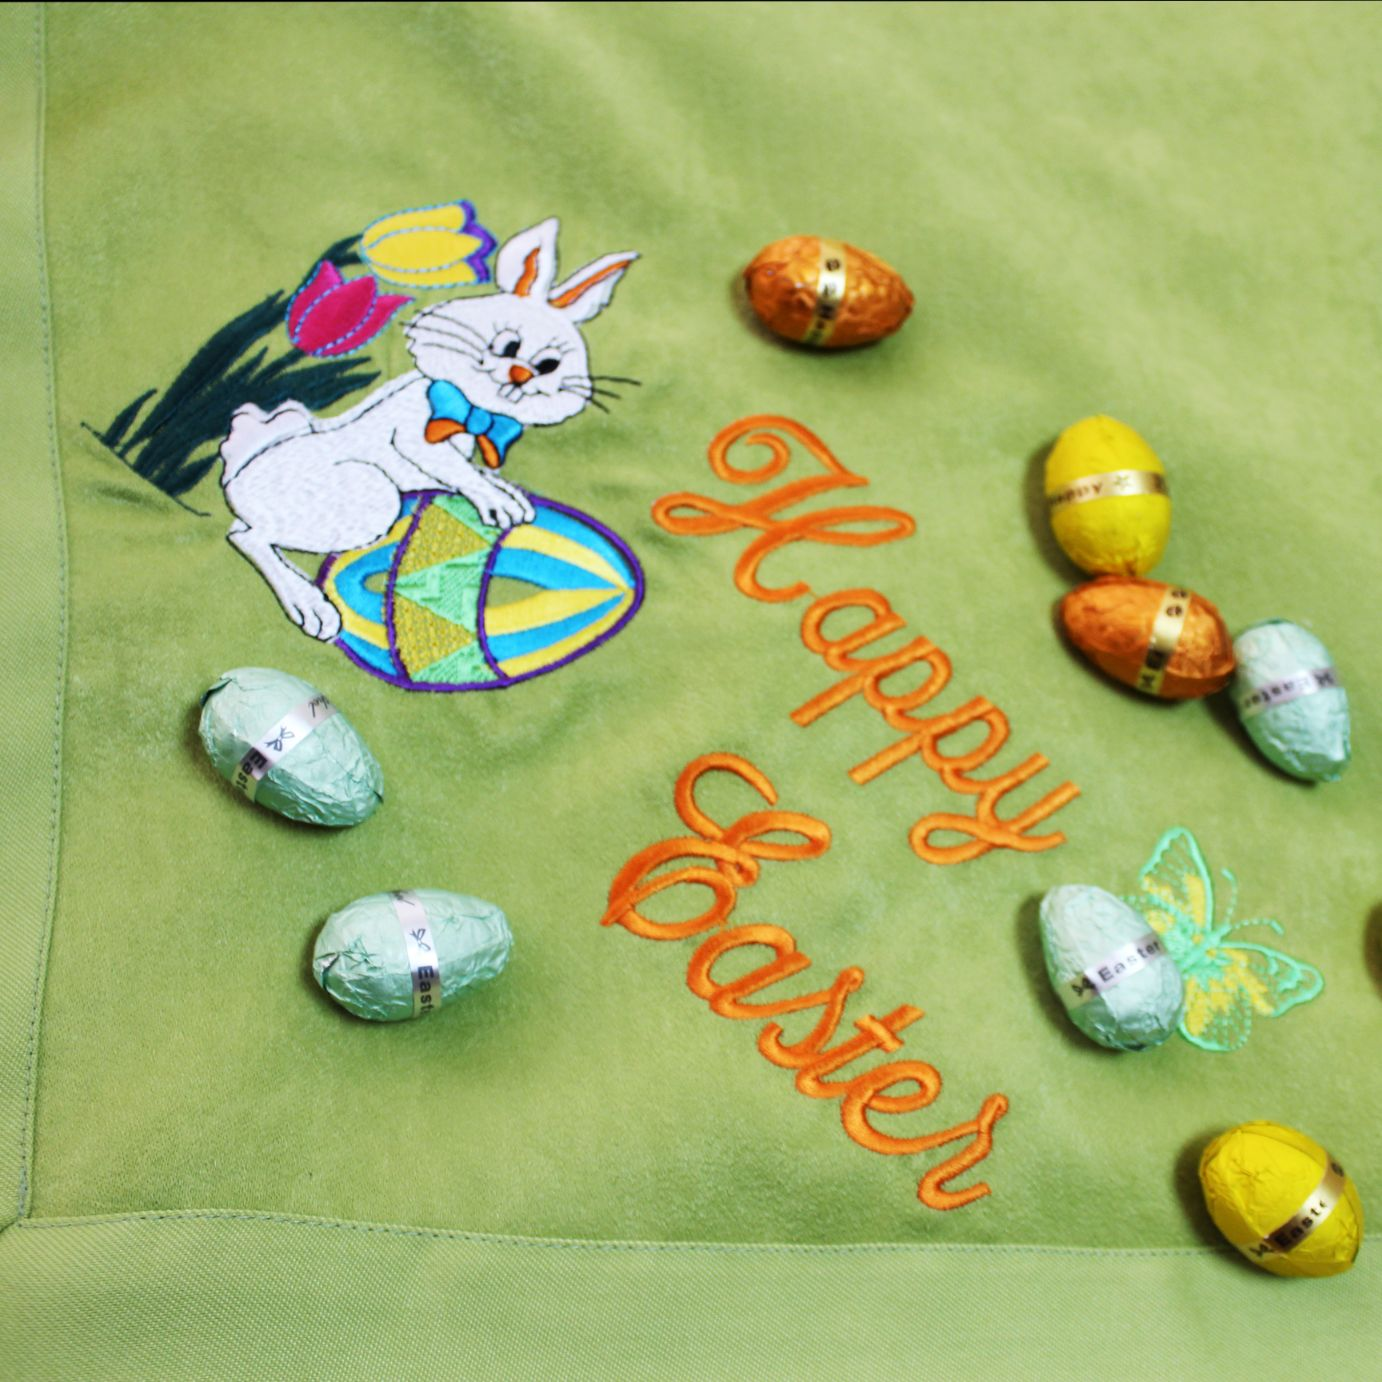 Easter 2019 EASTER HANDICRAFTS ARRANGEMENTS 20191